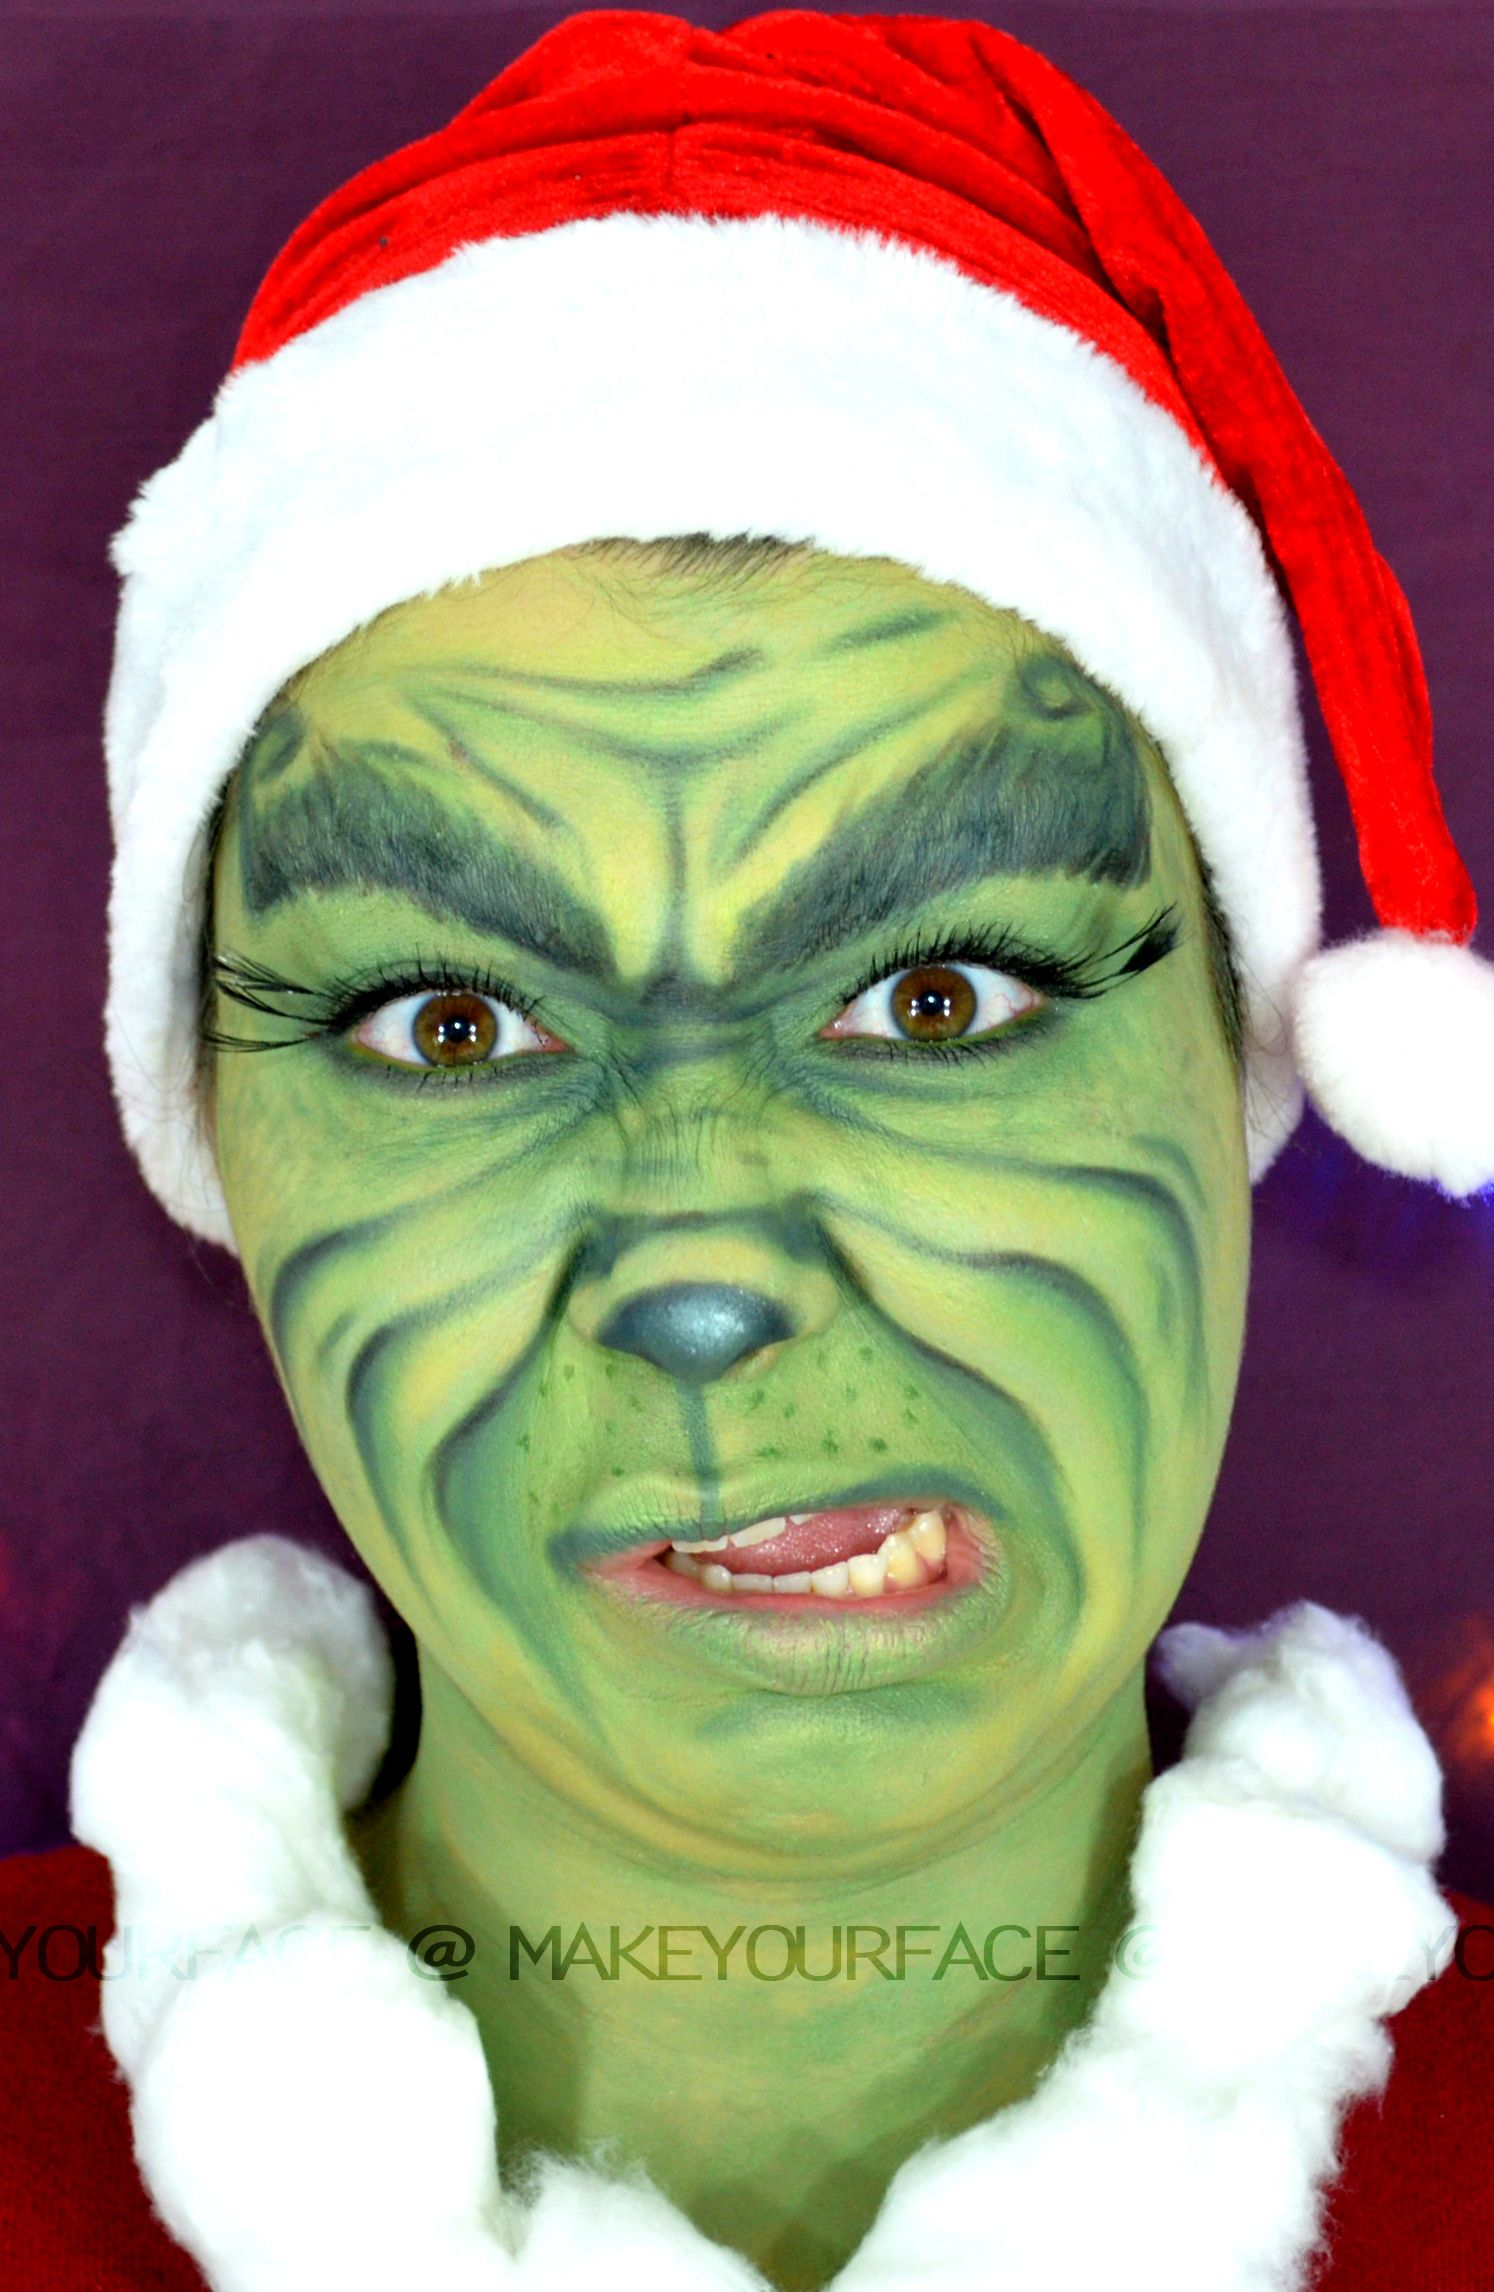 How to make your own grinch costume - See The Grinch Makeup Tutorial Http Youtu Be Nvbra9s0ss4